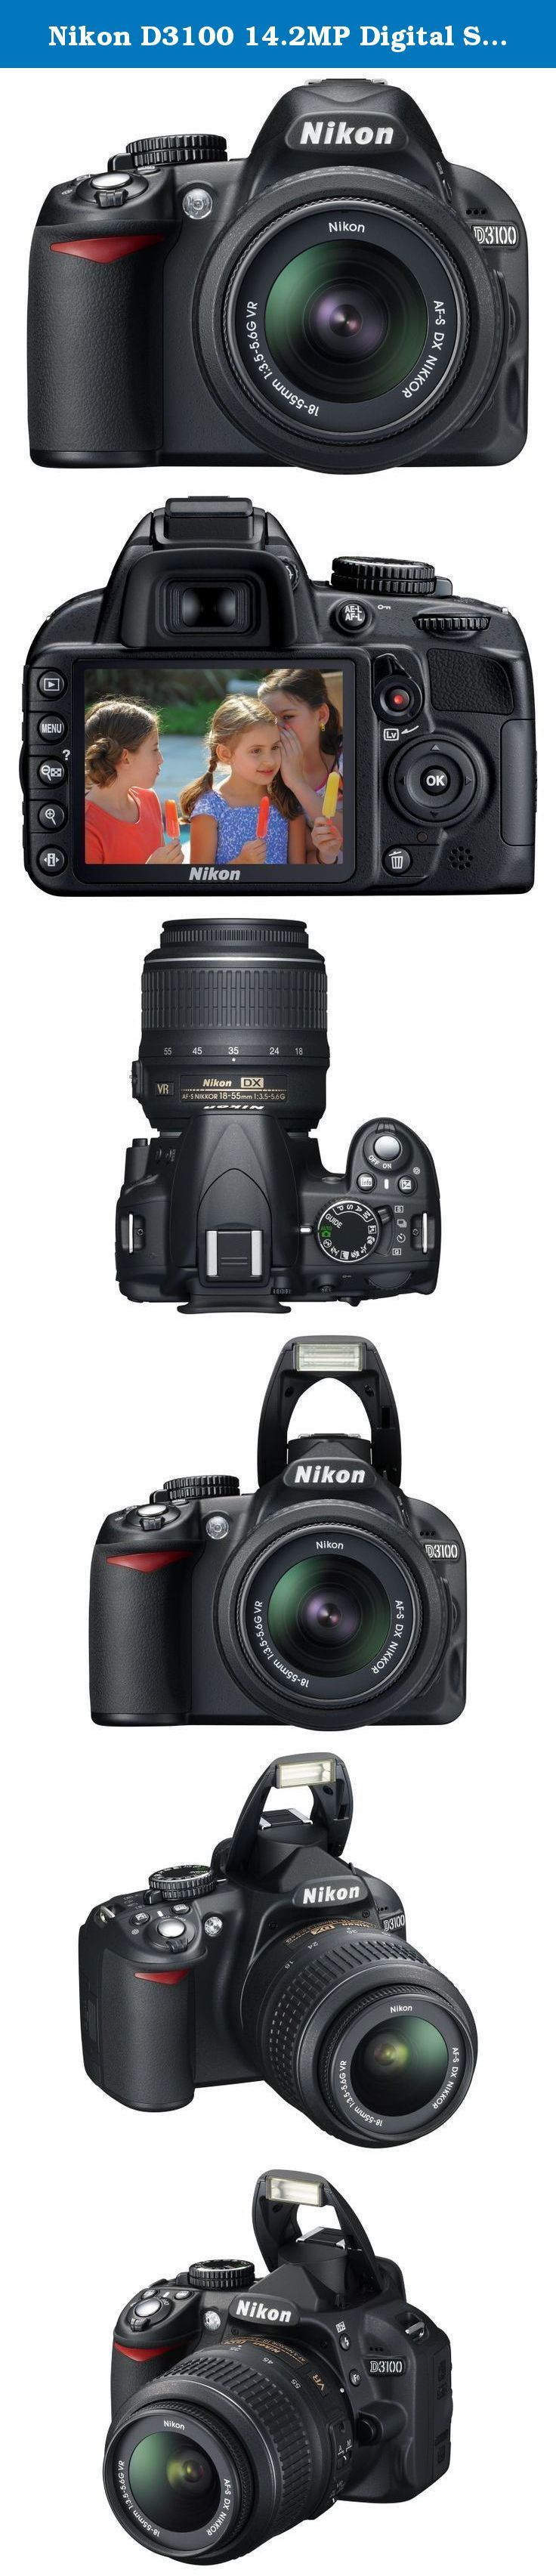 Nikon D3100 14.2MP Digital SLR Camera with 18-55mm f/3.5-5.6 VR & 55-200mm f/4-5.6G IF-ED AF-S DX VR Nikkor Zoom Lenses. Proudly Nikon-branded, the Nikon Digital SLR and laptop backpack was designed specifically for DSLR photographers on the go. There's well-organized space for a digital SLR body, up to five interchangeable lenses, a laptop computer, and other essential accessories. A rigid, impact-resistant base protects the contents from moisture and toppling, while the…